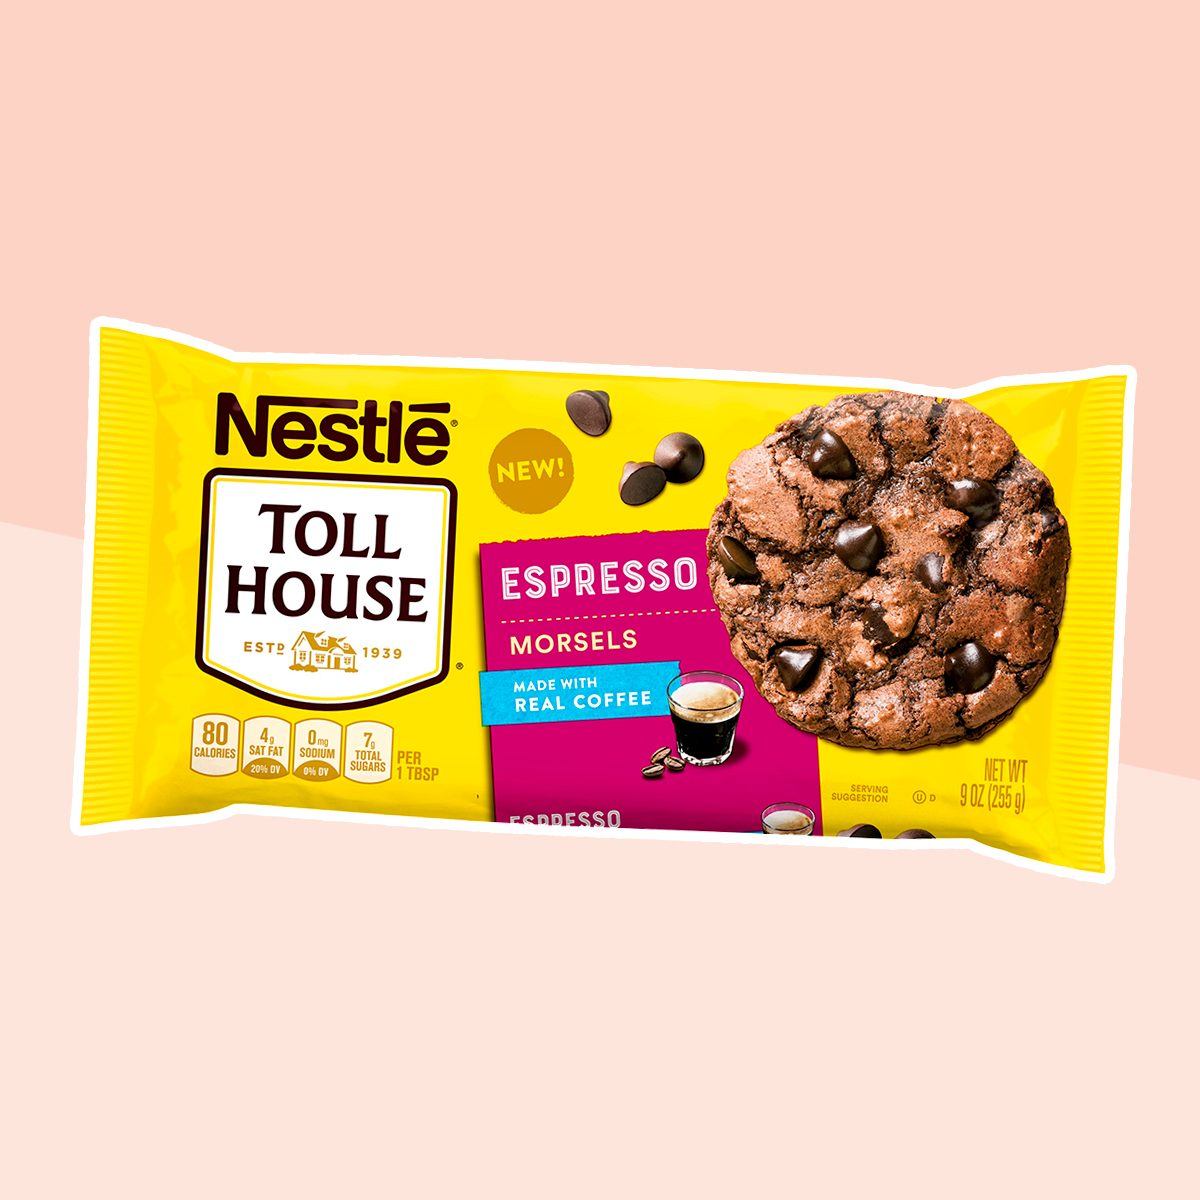 Nestlé Toll House Espresso Baking Chips